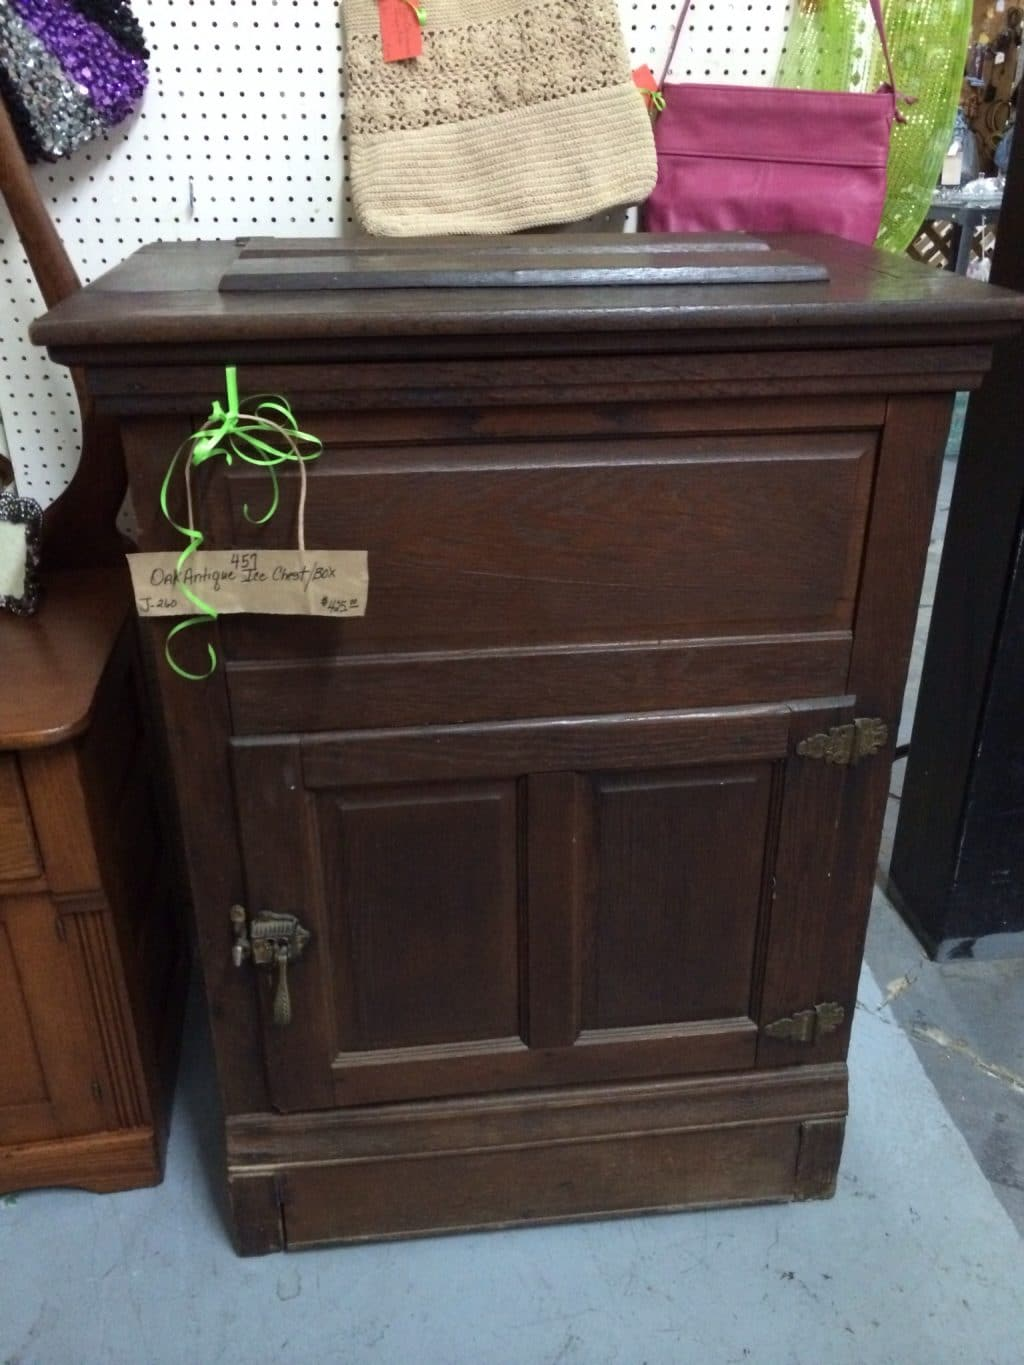 Antique Ice Box - Come See Our Antique Store Near Birmingham Alabama